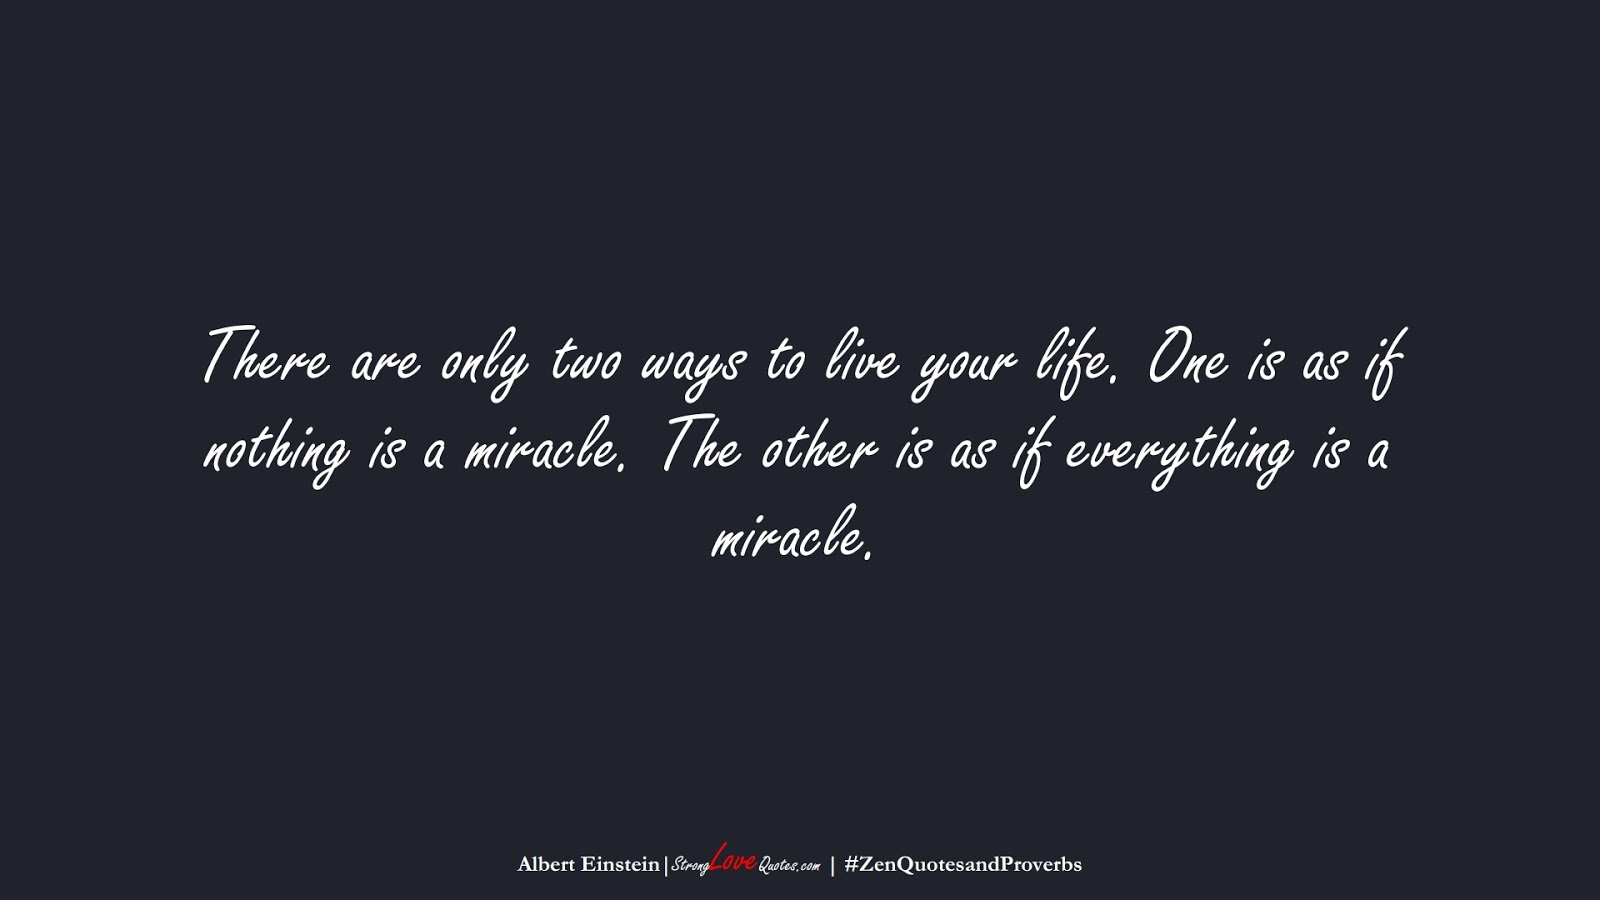 There are only two ways to live your life. One is as if nothing is a miracle. The other is as if everything is a miracle. (Albert Einstein);  #ZenQuotesandProverbs